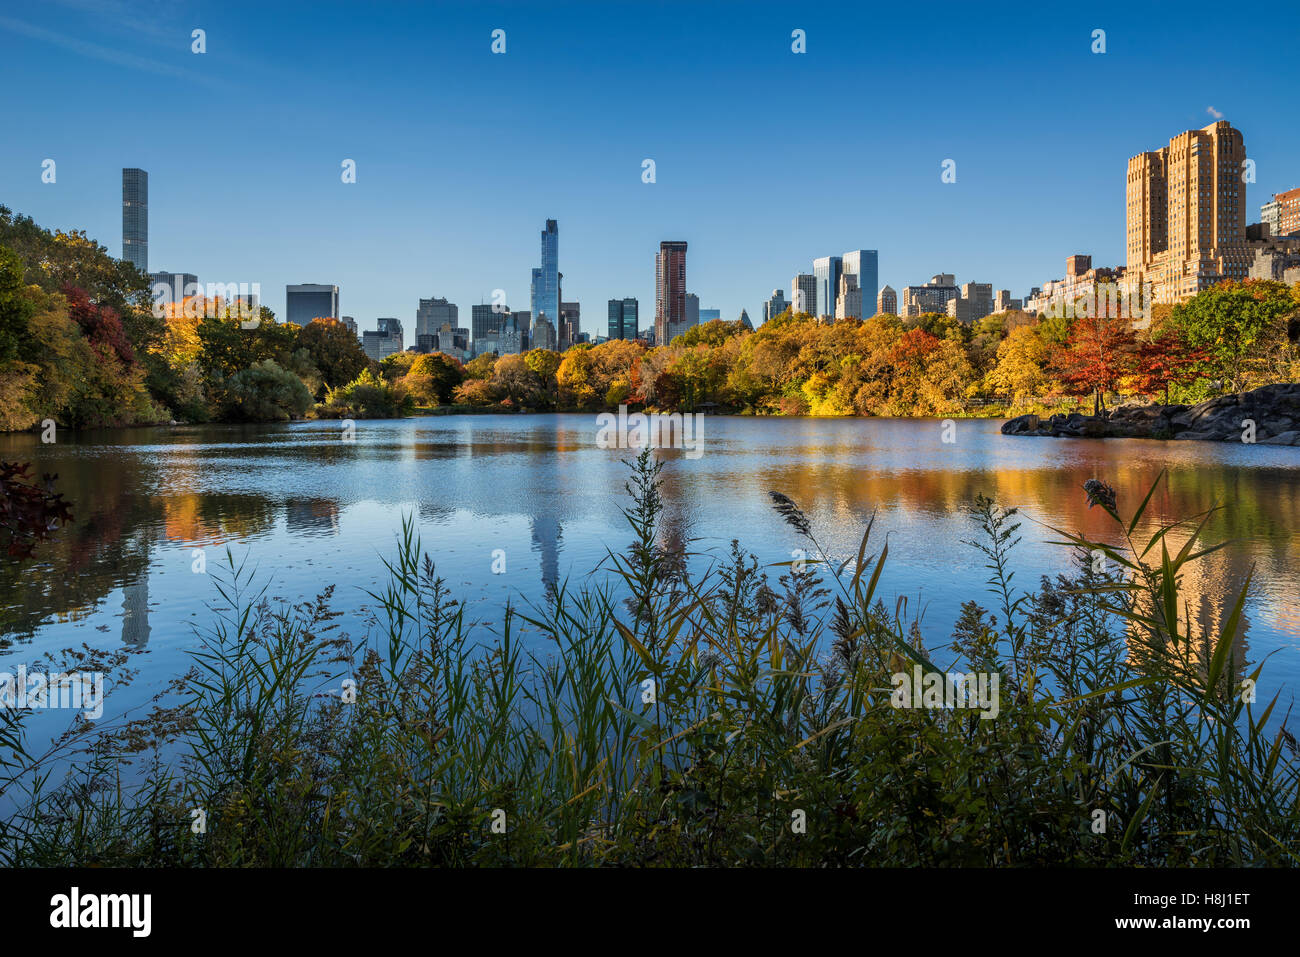 Fall in Central Park at The Lake with Midtown and Upper West Side skyscrapers. Autumn foliage in New York City - Stock Image